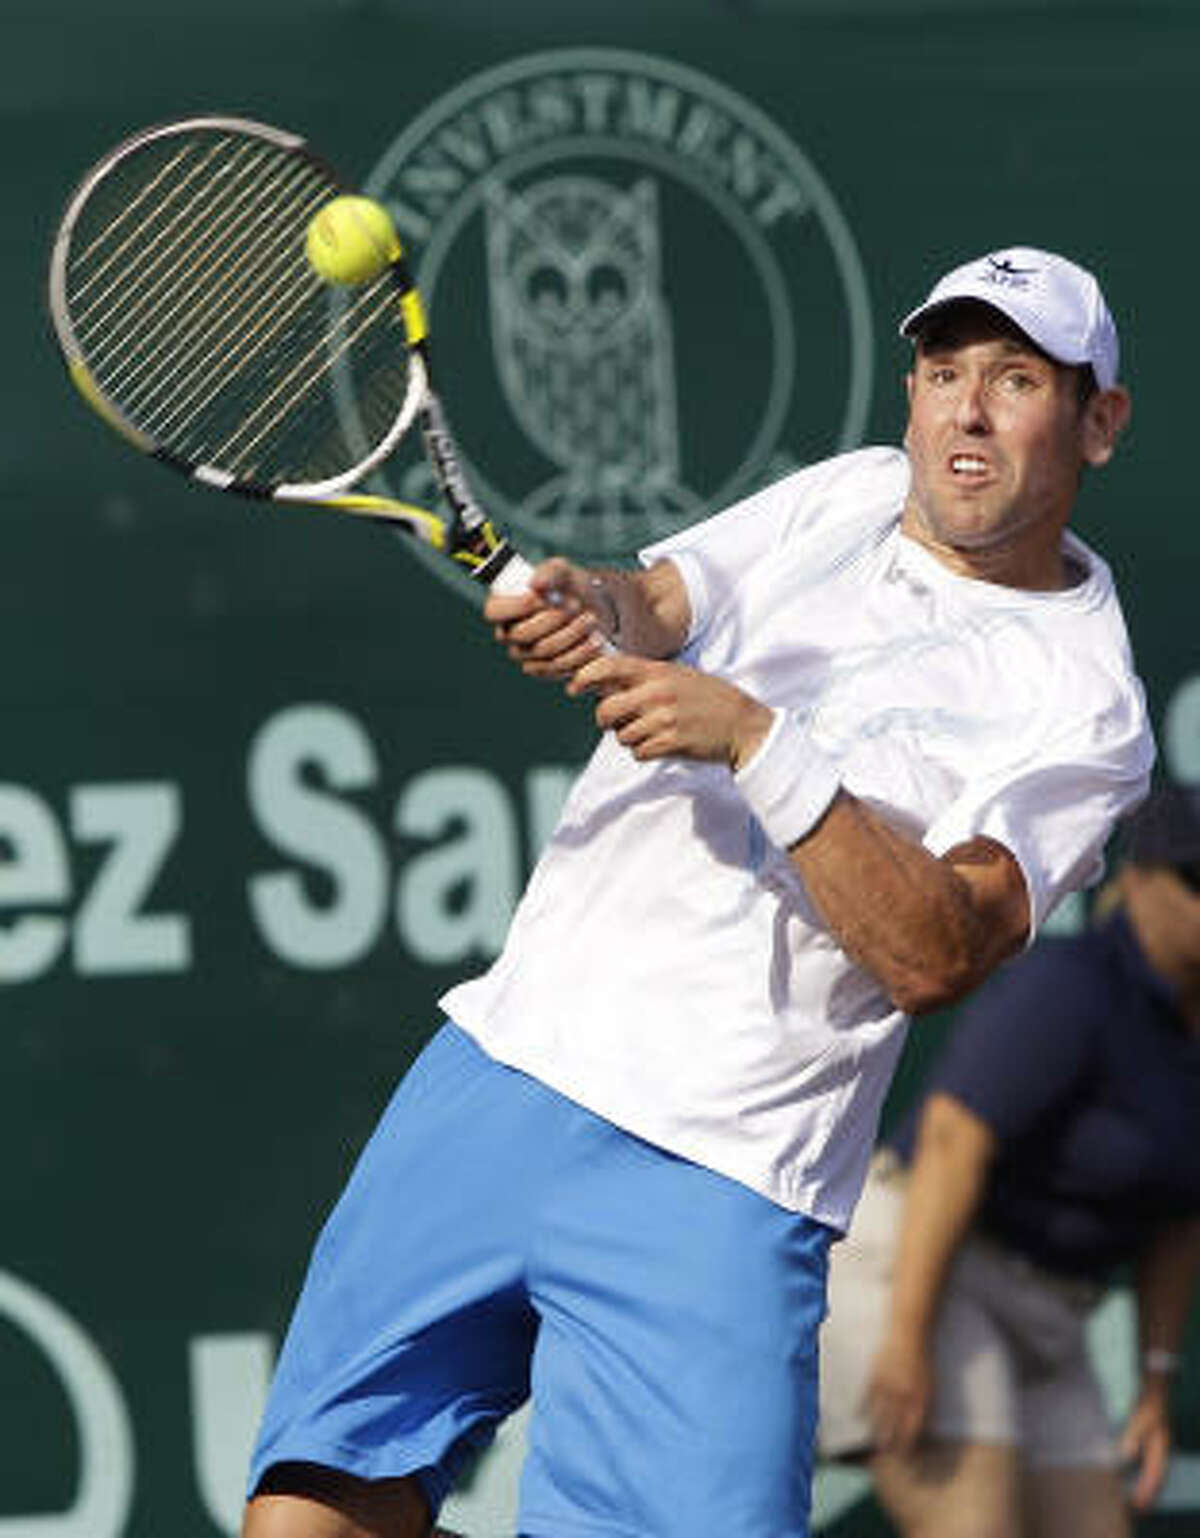 Wayne Odesnik hits a return against Jerzy Janowicz at River Oaks Country Club.